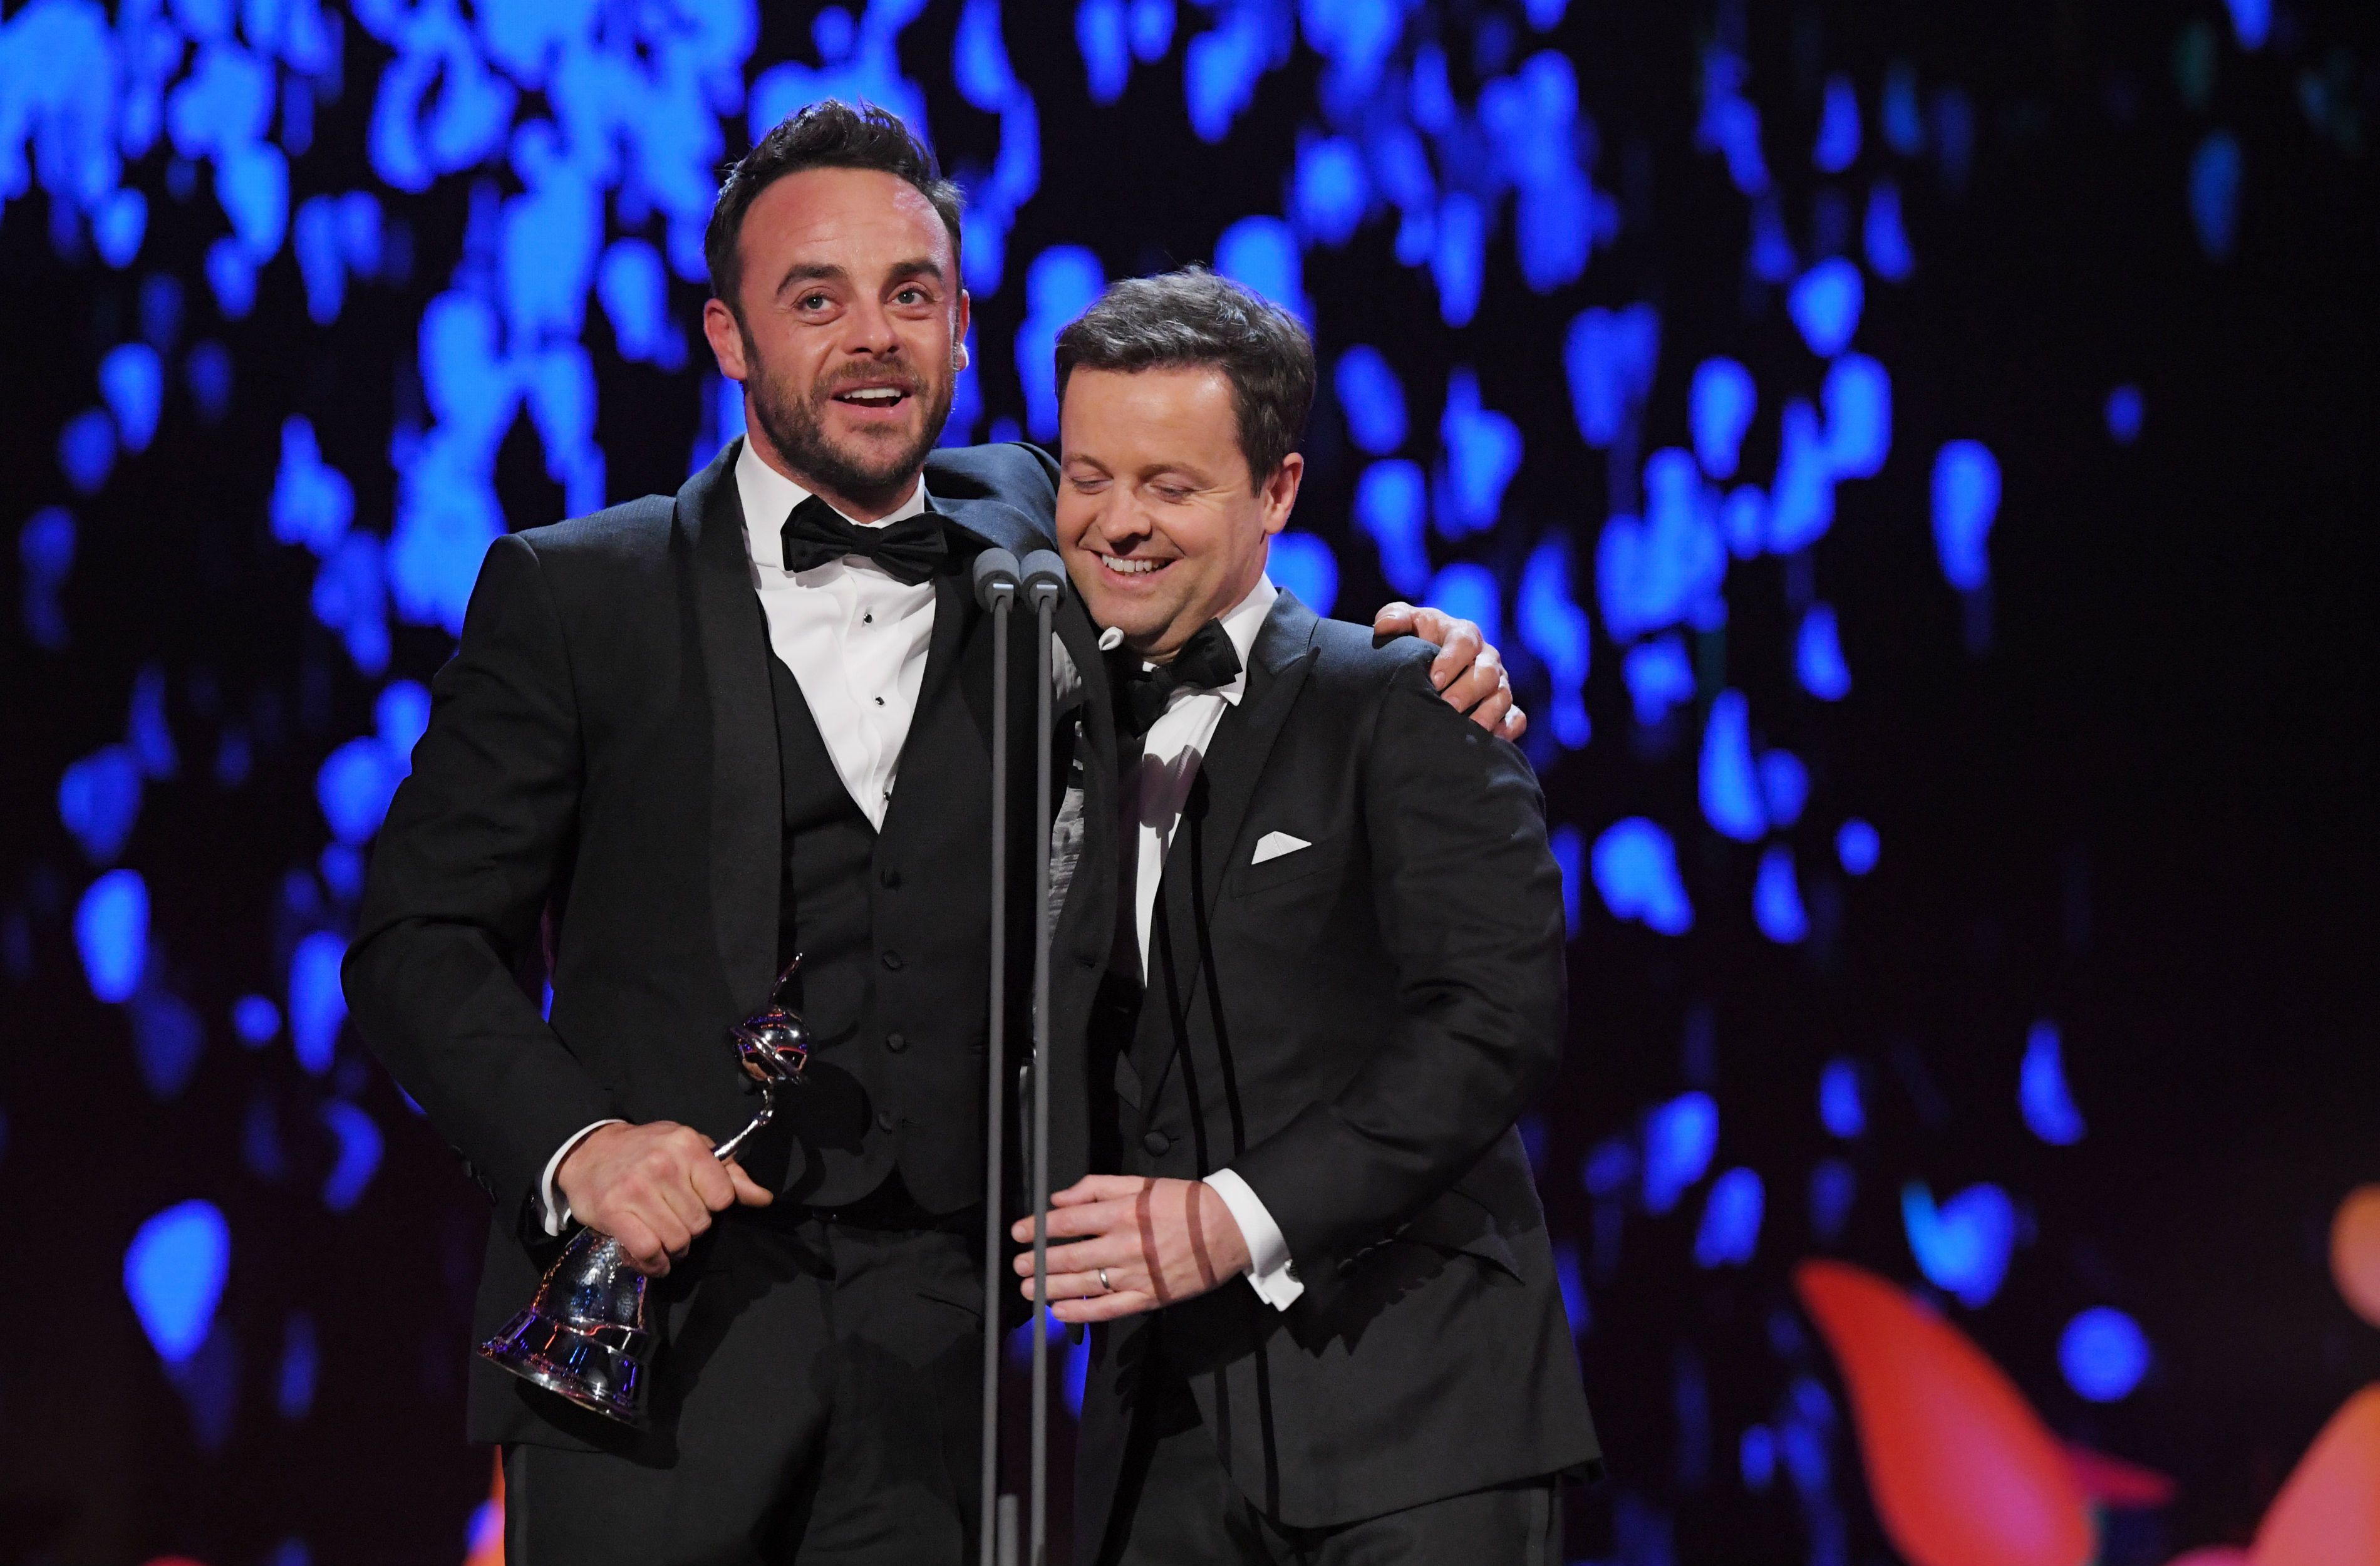 Ant and Dec meet relatives they never knew existed in ITV show